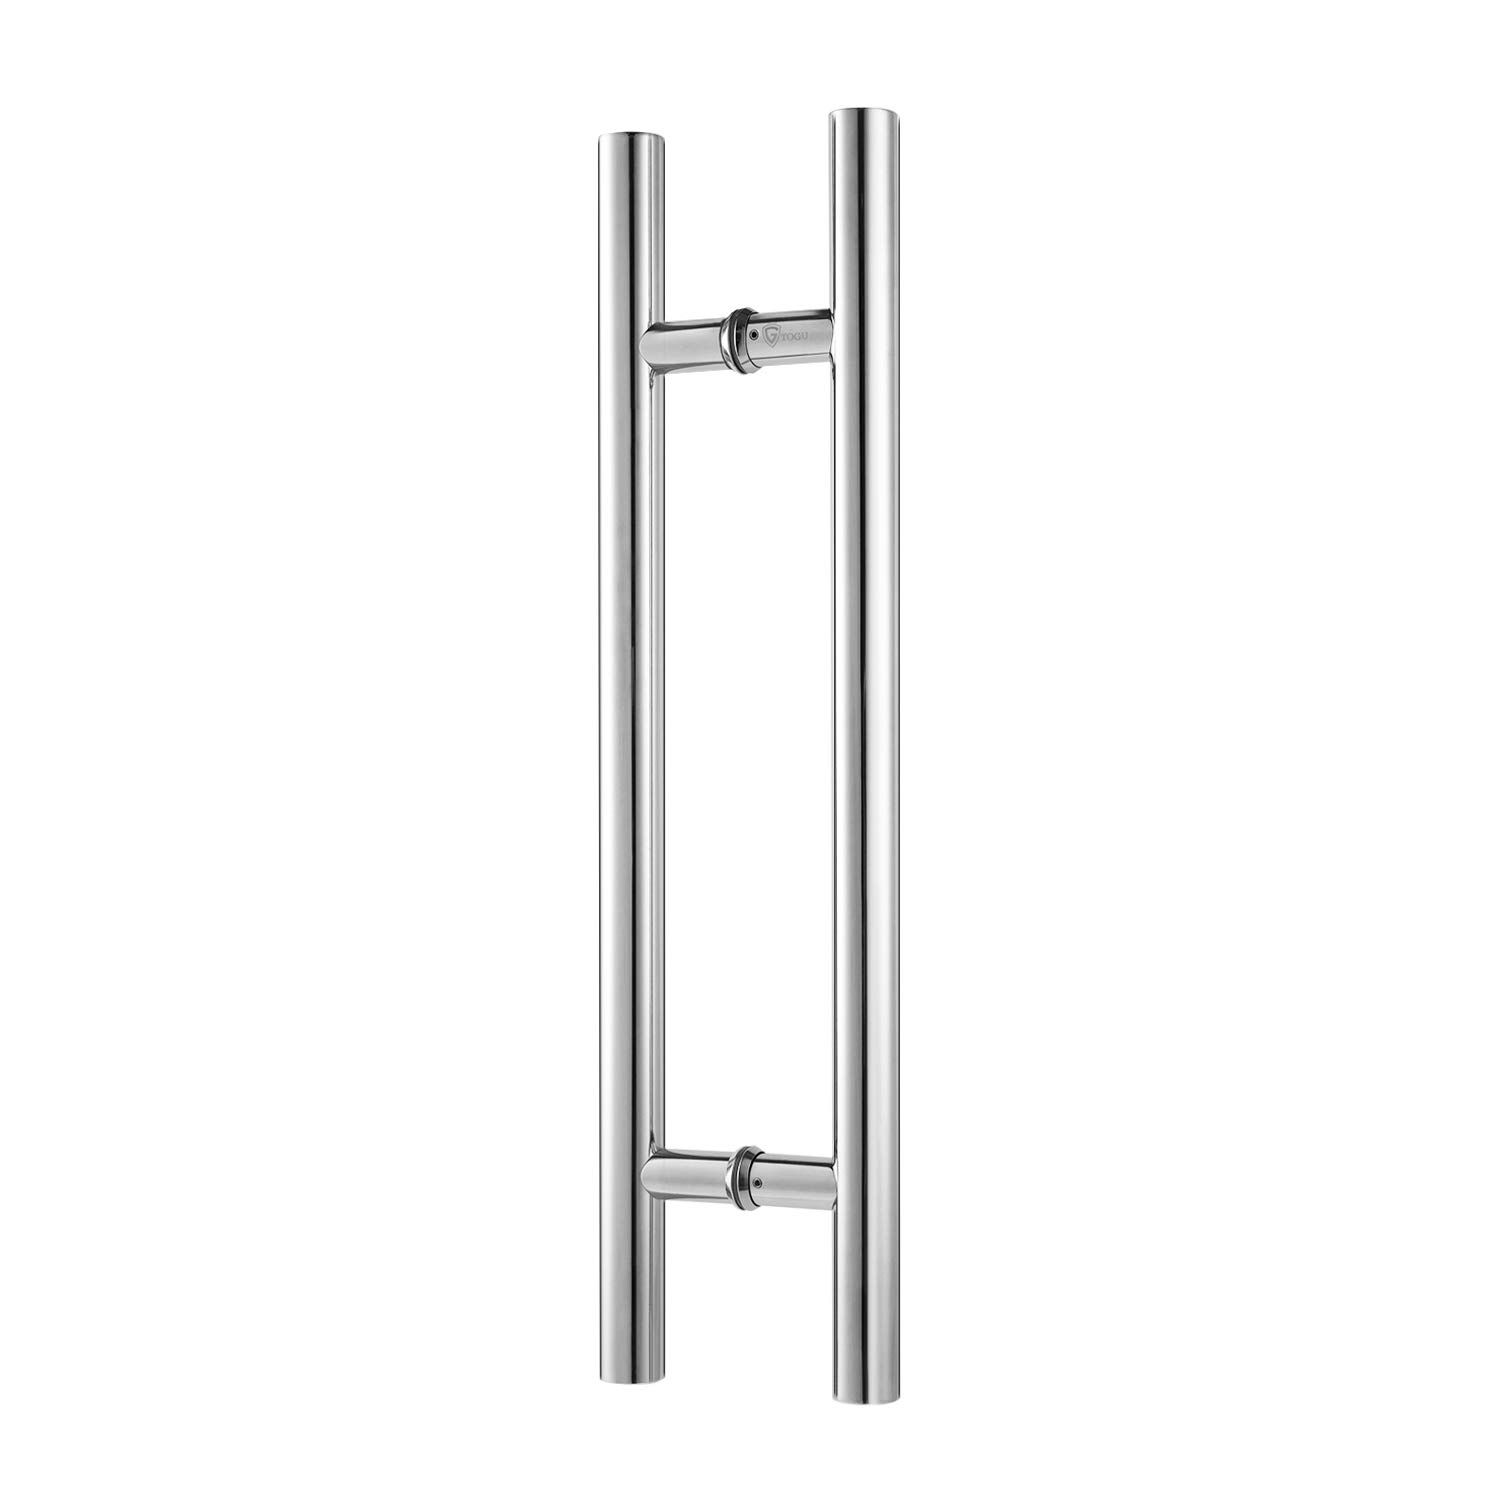 TOGU TG-6012 36 inches Solid Standoffs Heavy-Duty Commercial Grade-304 Stainless Steel Push Pull Door Handle/Barn Door Pull Handle/Glass Pulls, Mirror-Polished Chrome Finish